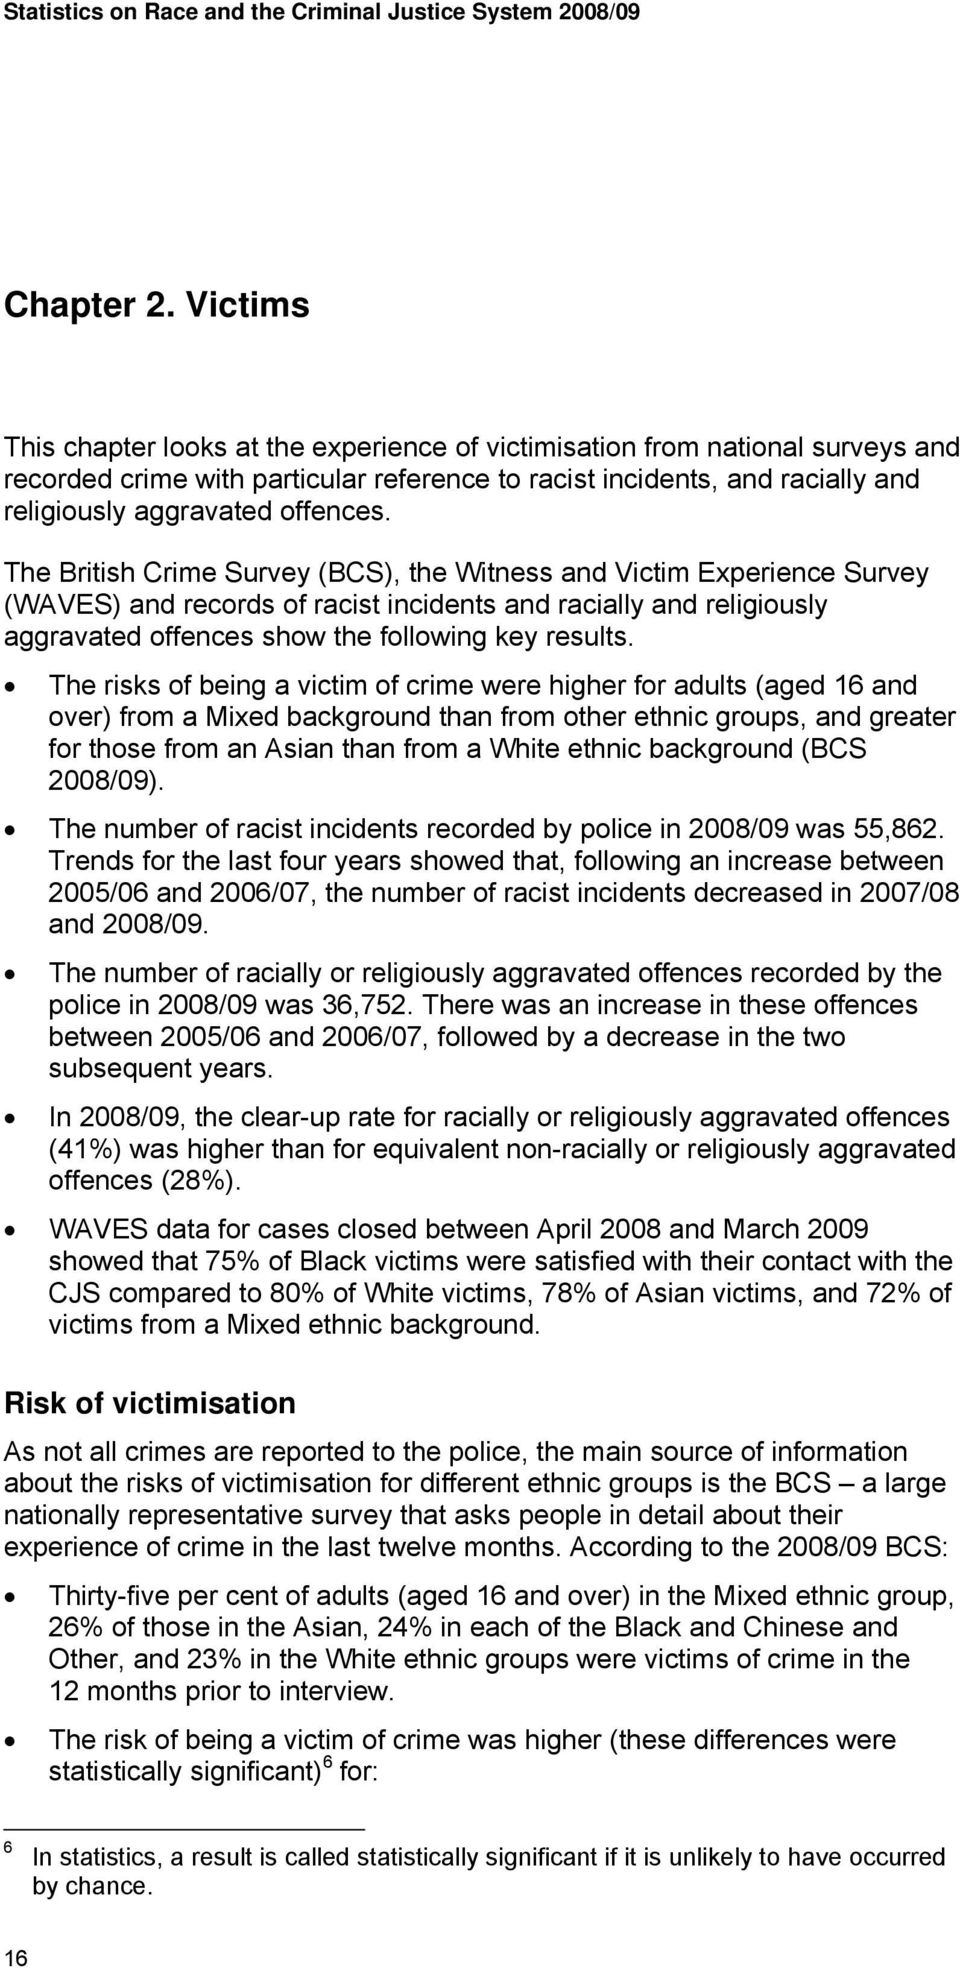 The British Crime Survey (BCS), the Witness and Victim Experience Survey (WAVES) and records of racist incidents and racially and religiously aggravated offences show the following key results.